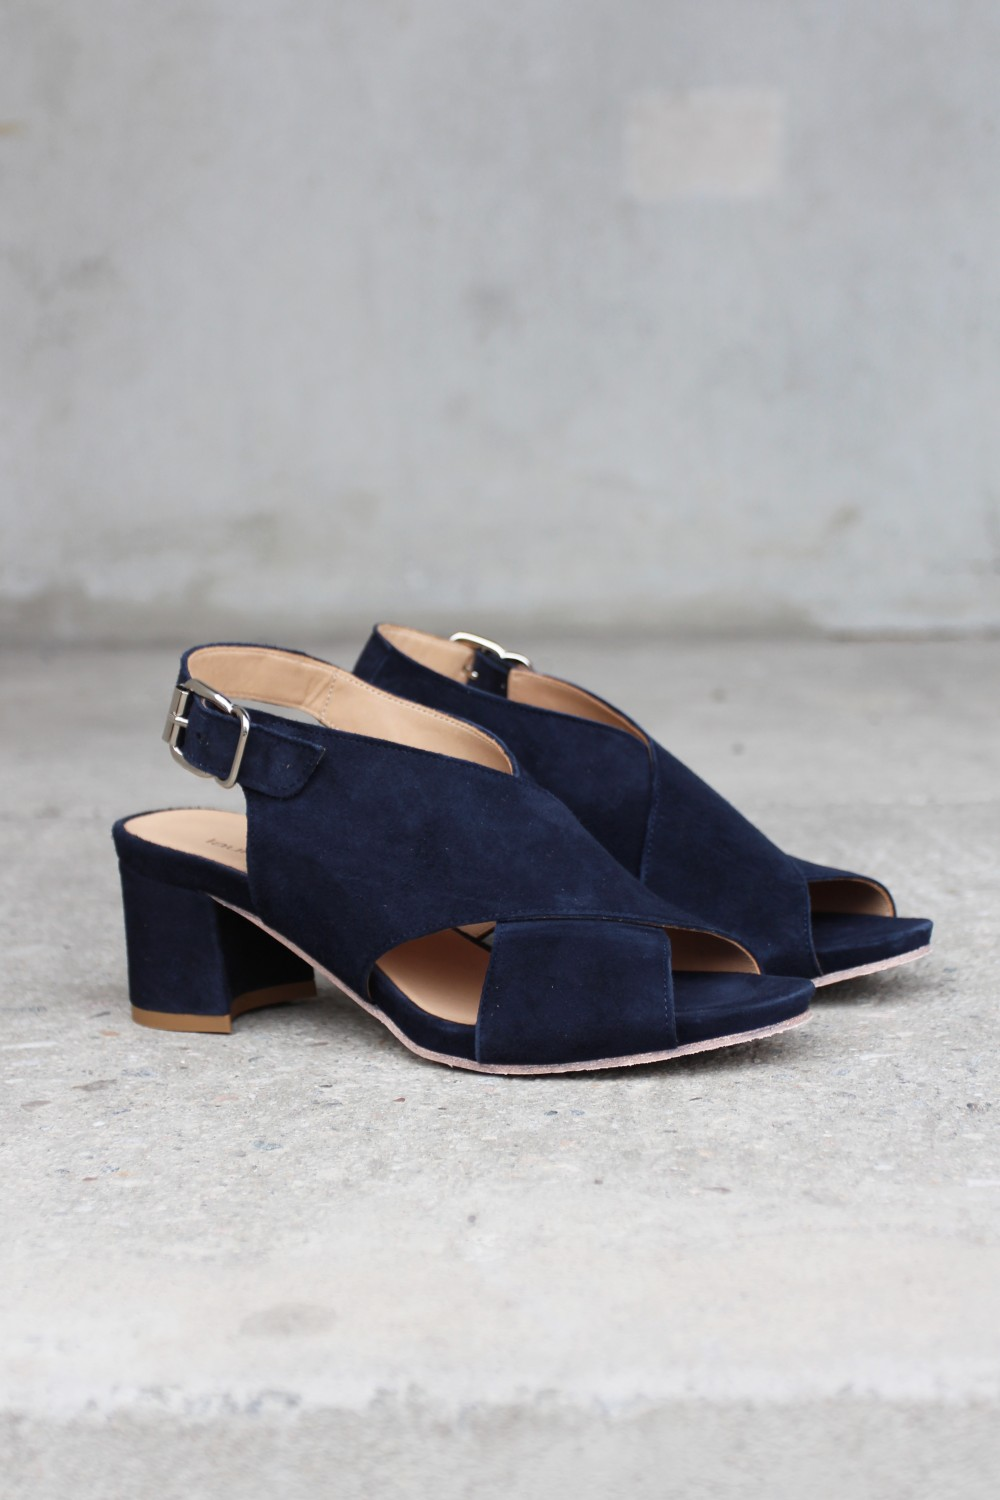 Laura Bellariva Striss Blue